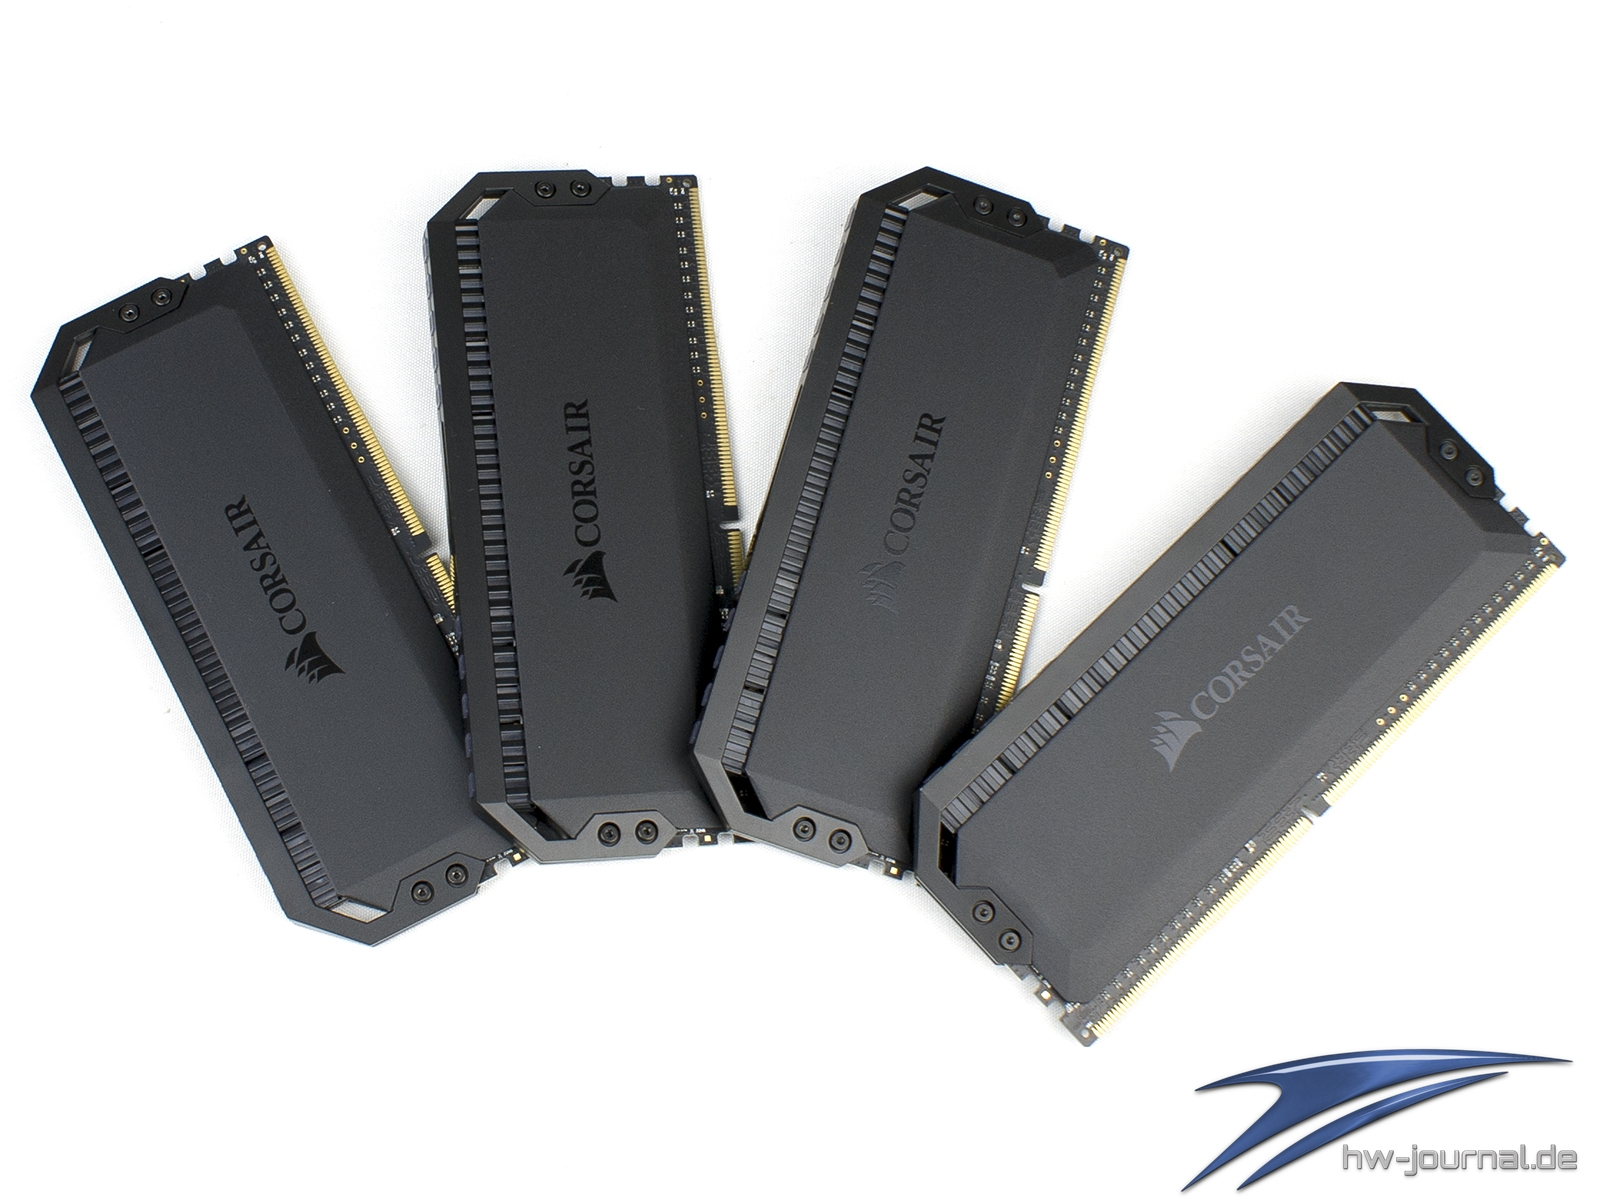 Test: Corsair Dominator Platinum RGB 32GB DDR4-3200 - Hardware-Journal